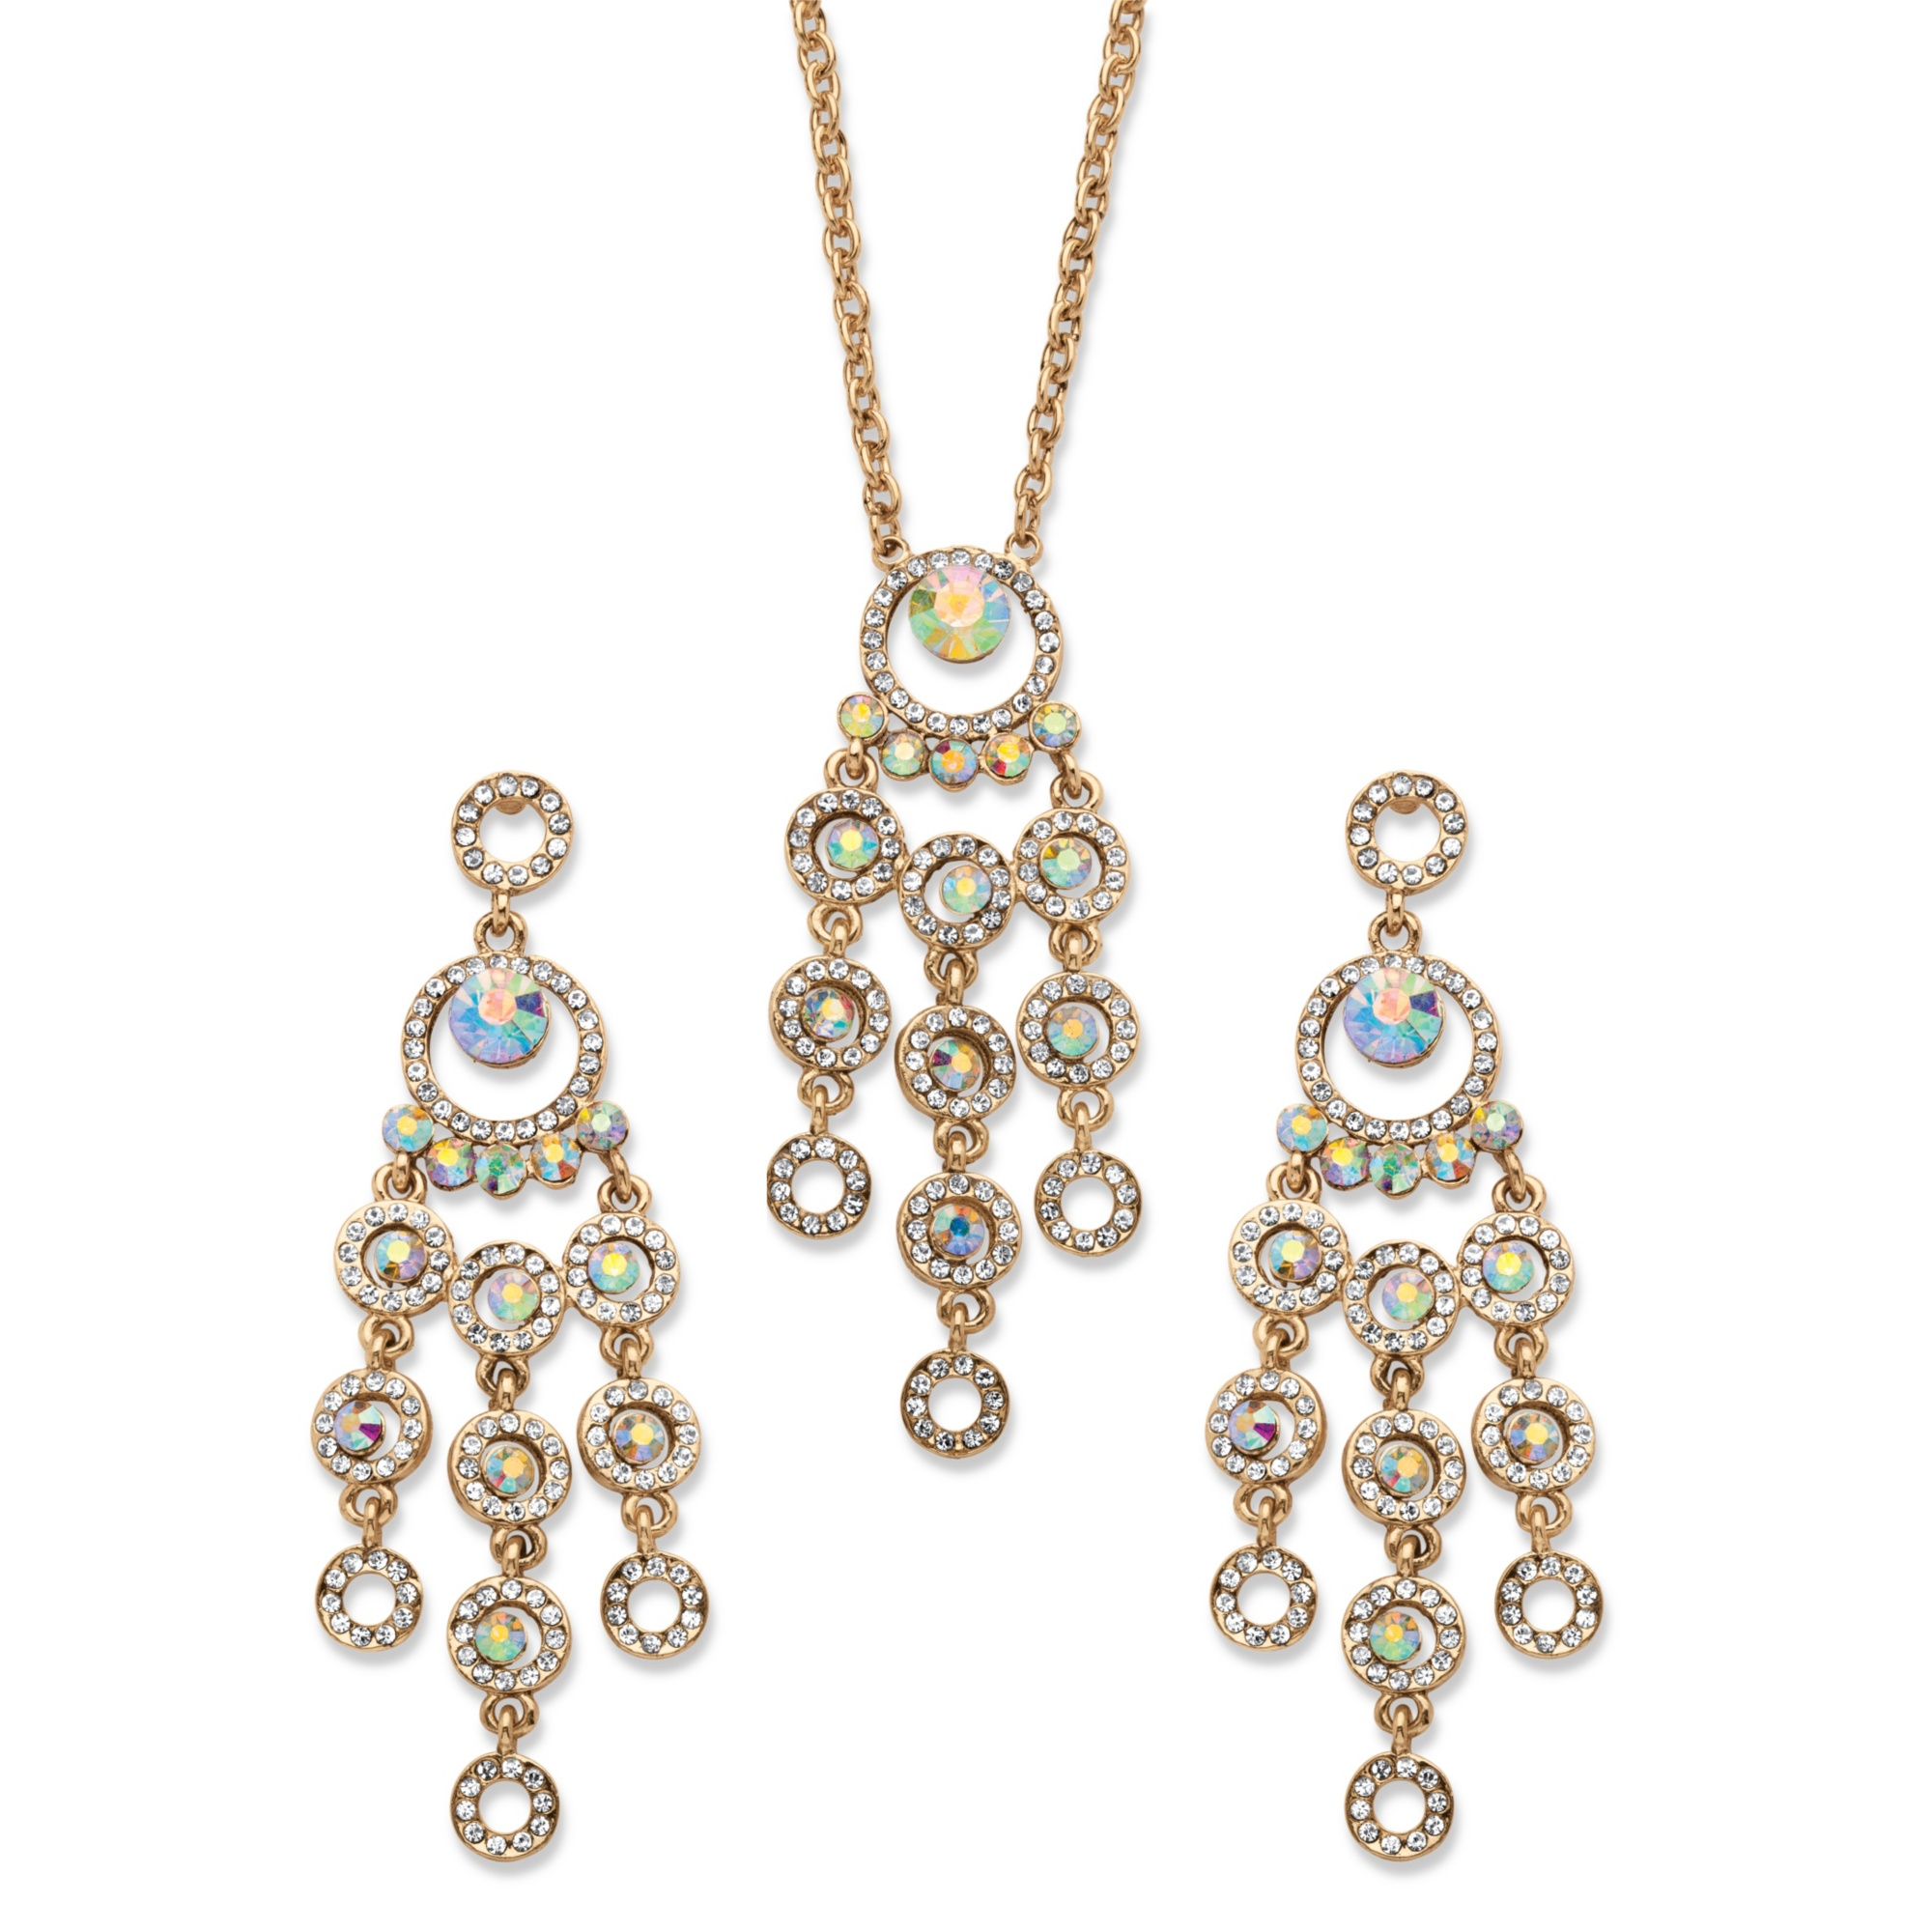 Aurora Borealis Crystal Chandelier Halo Necklace and Earrings Set in Antique Gold Tone